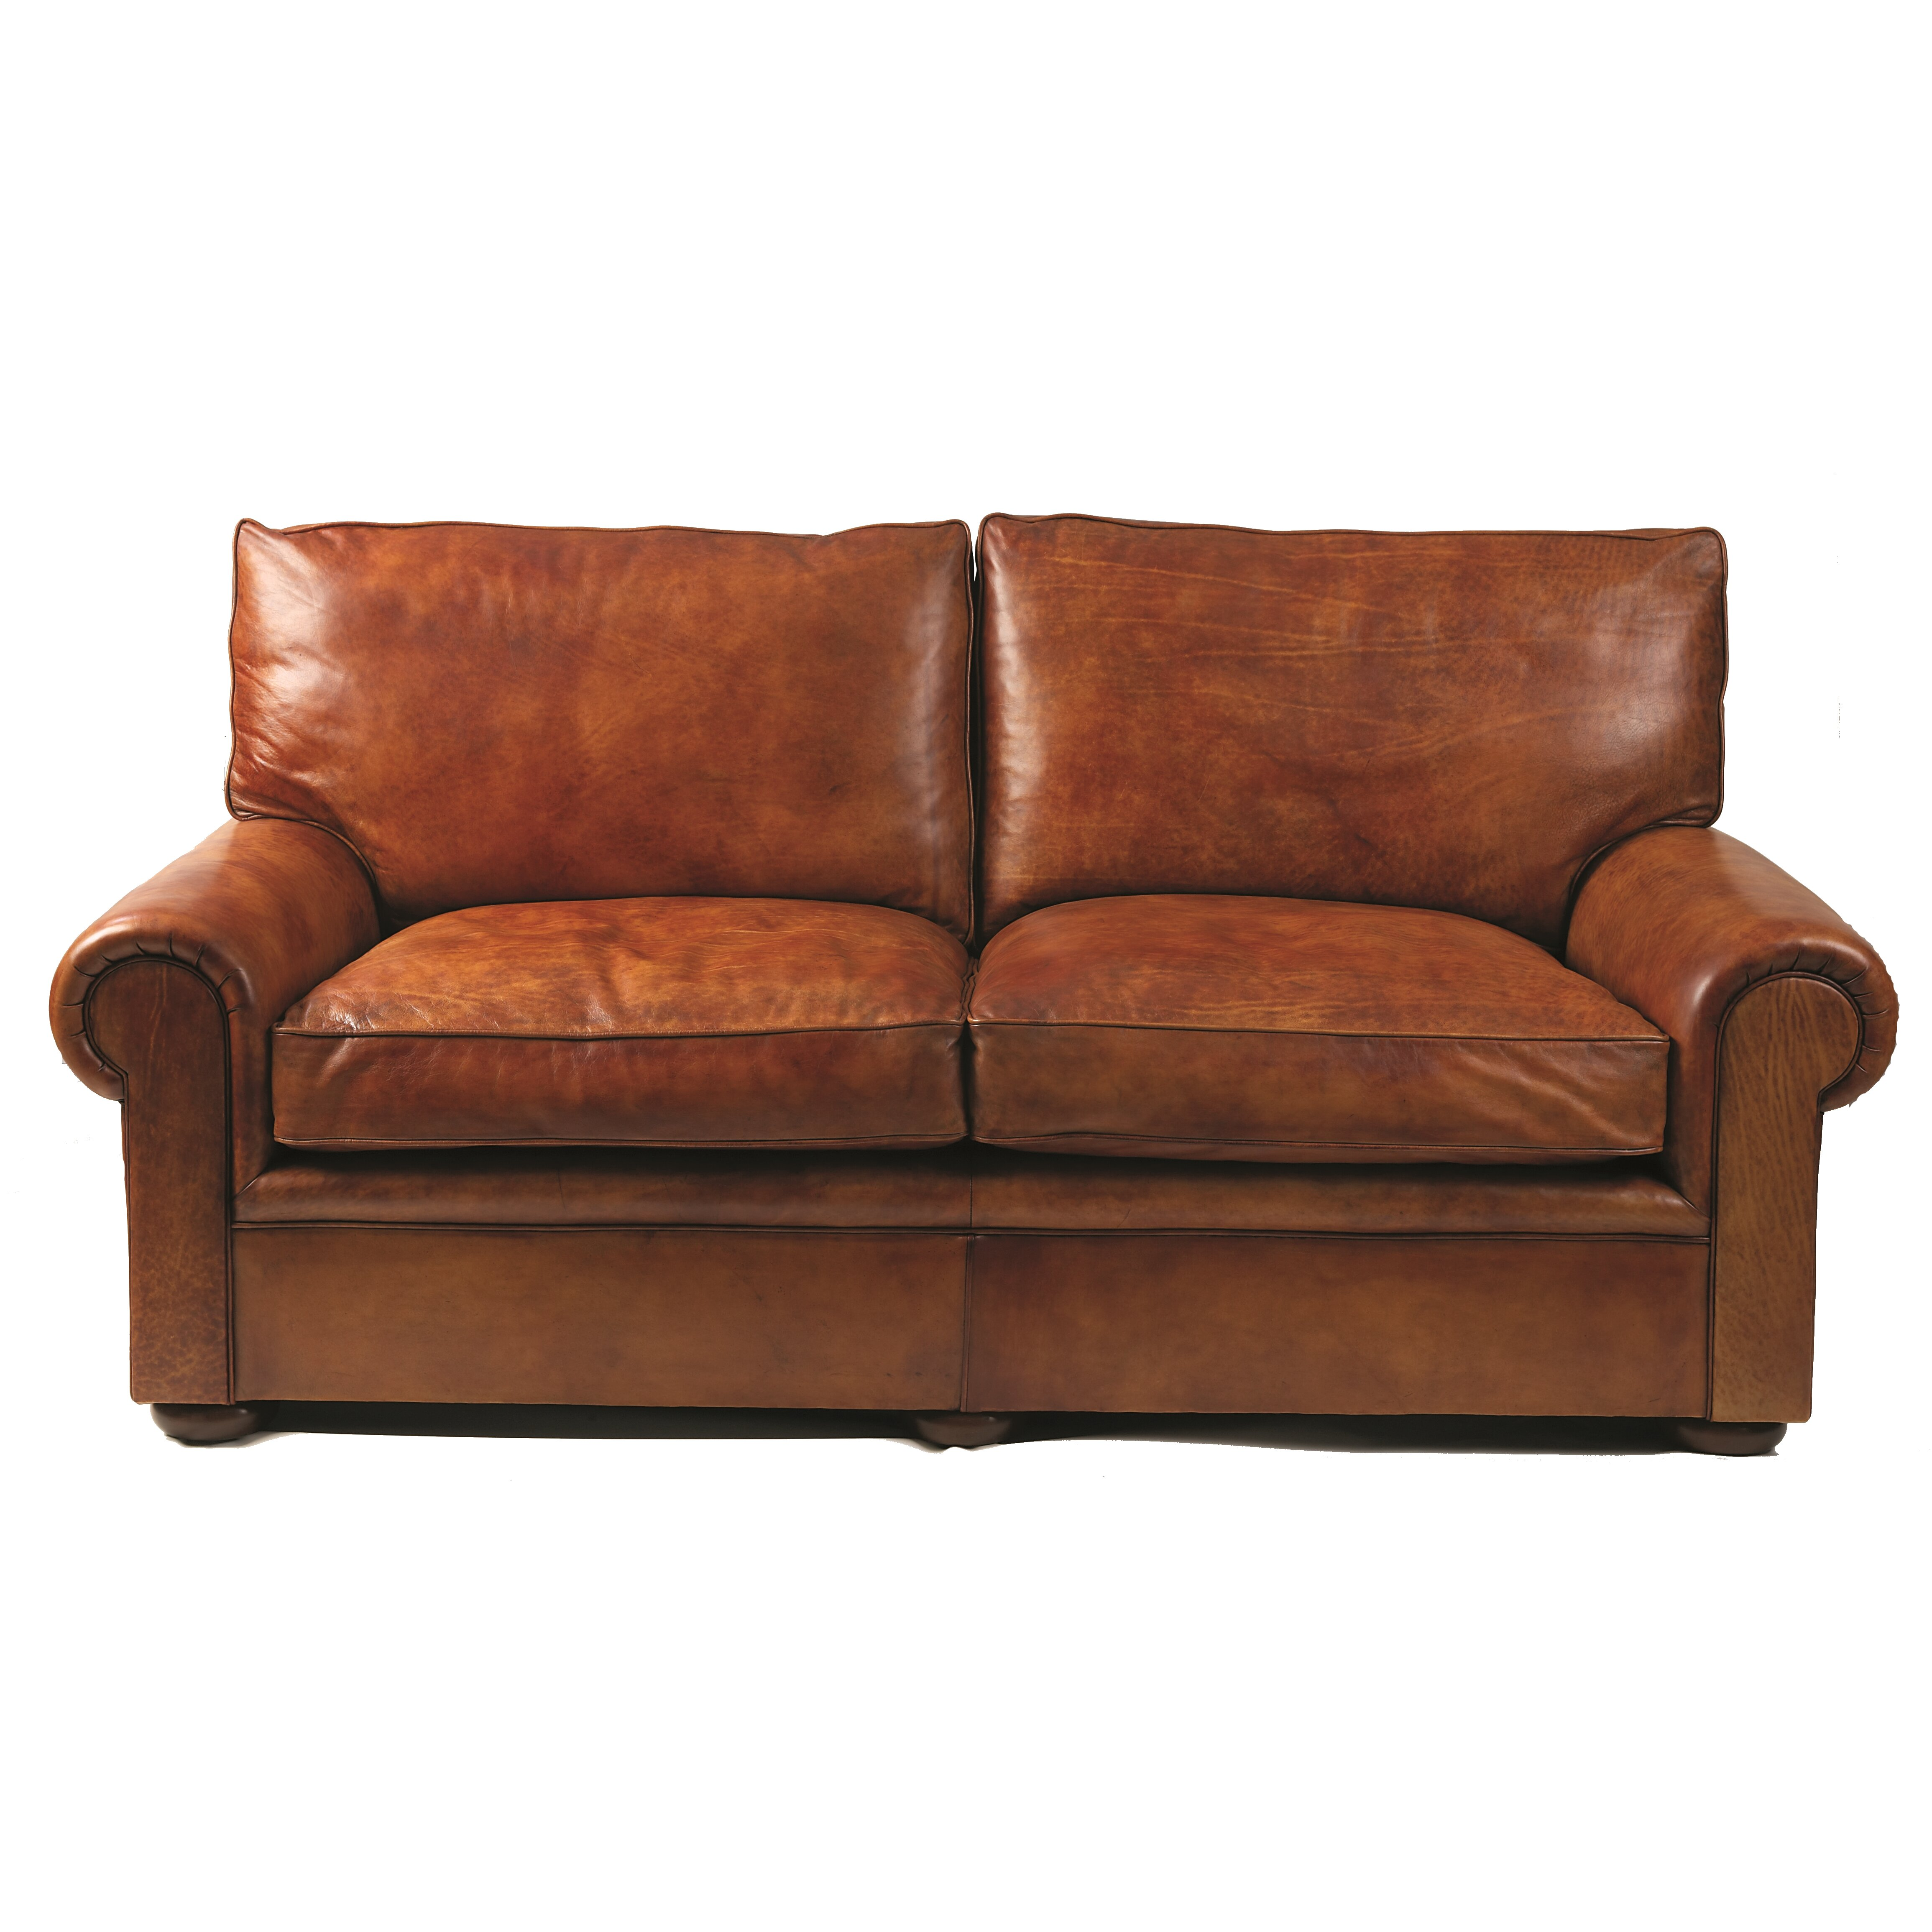 Leather sofa beds 100 buy sofa bed online buy designer for Buy leather sectional sofa bed